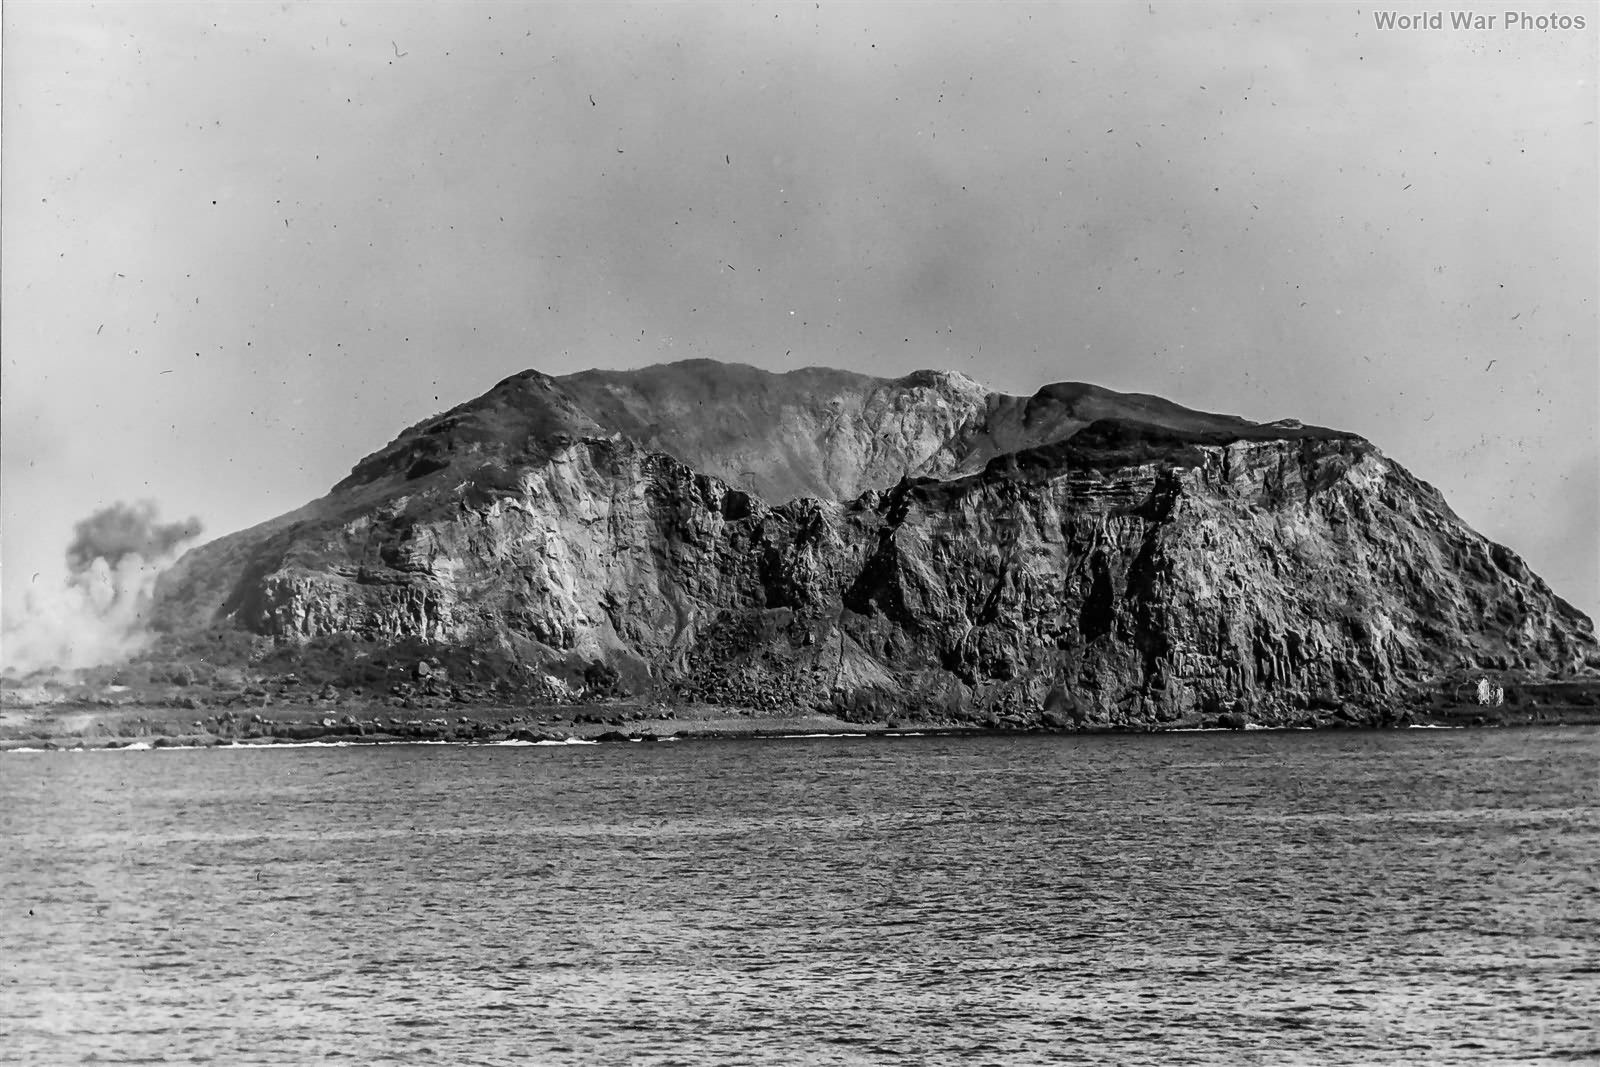 Mt Suribachi from the viewpoint of the USS Arkansas during the Battle of Iwo Jima